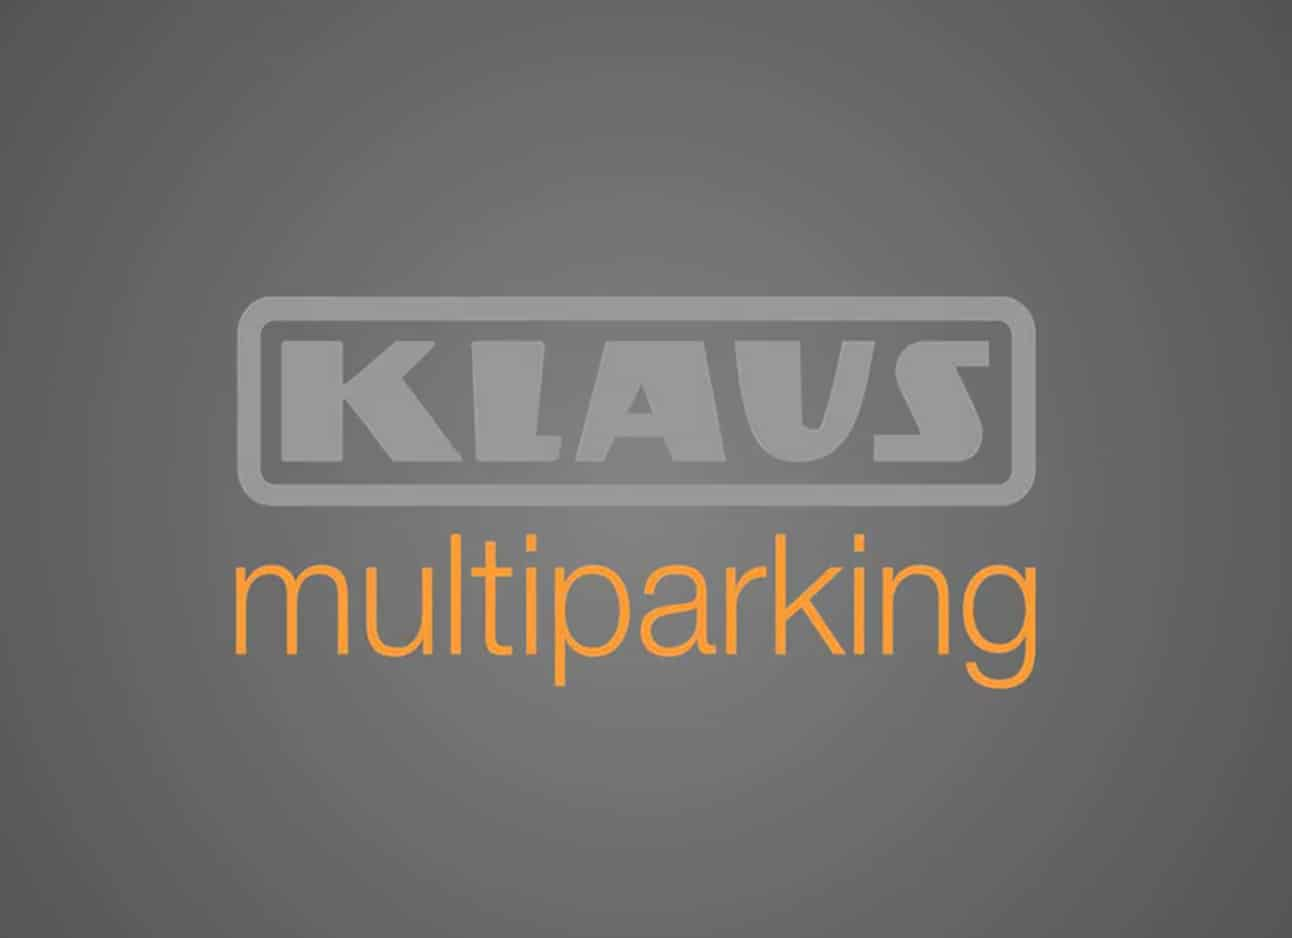 Klaus-Multiparking-Under-Ground-Parking-Explainer-Video